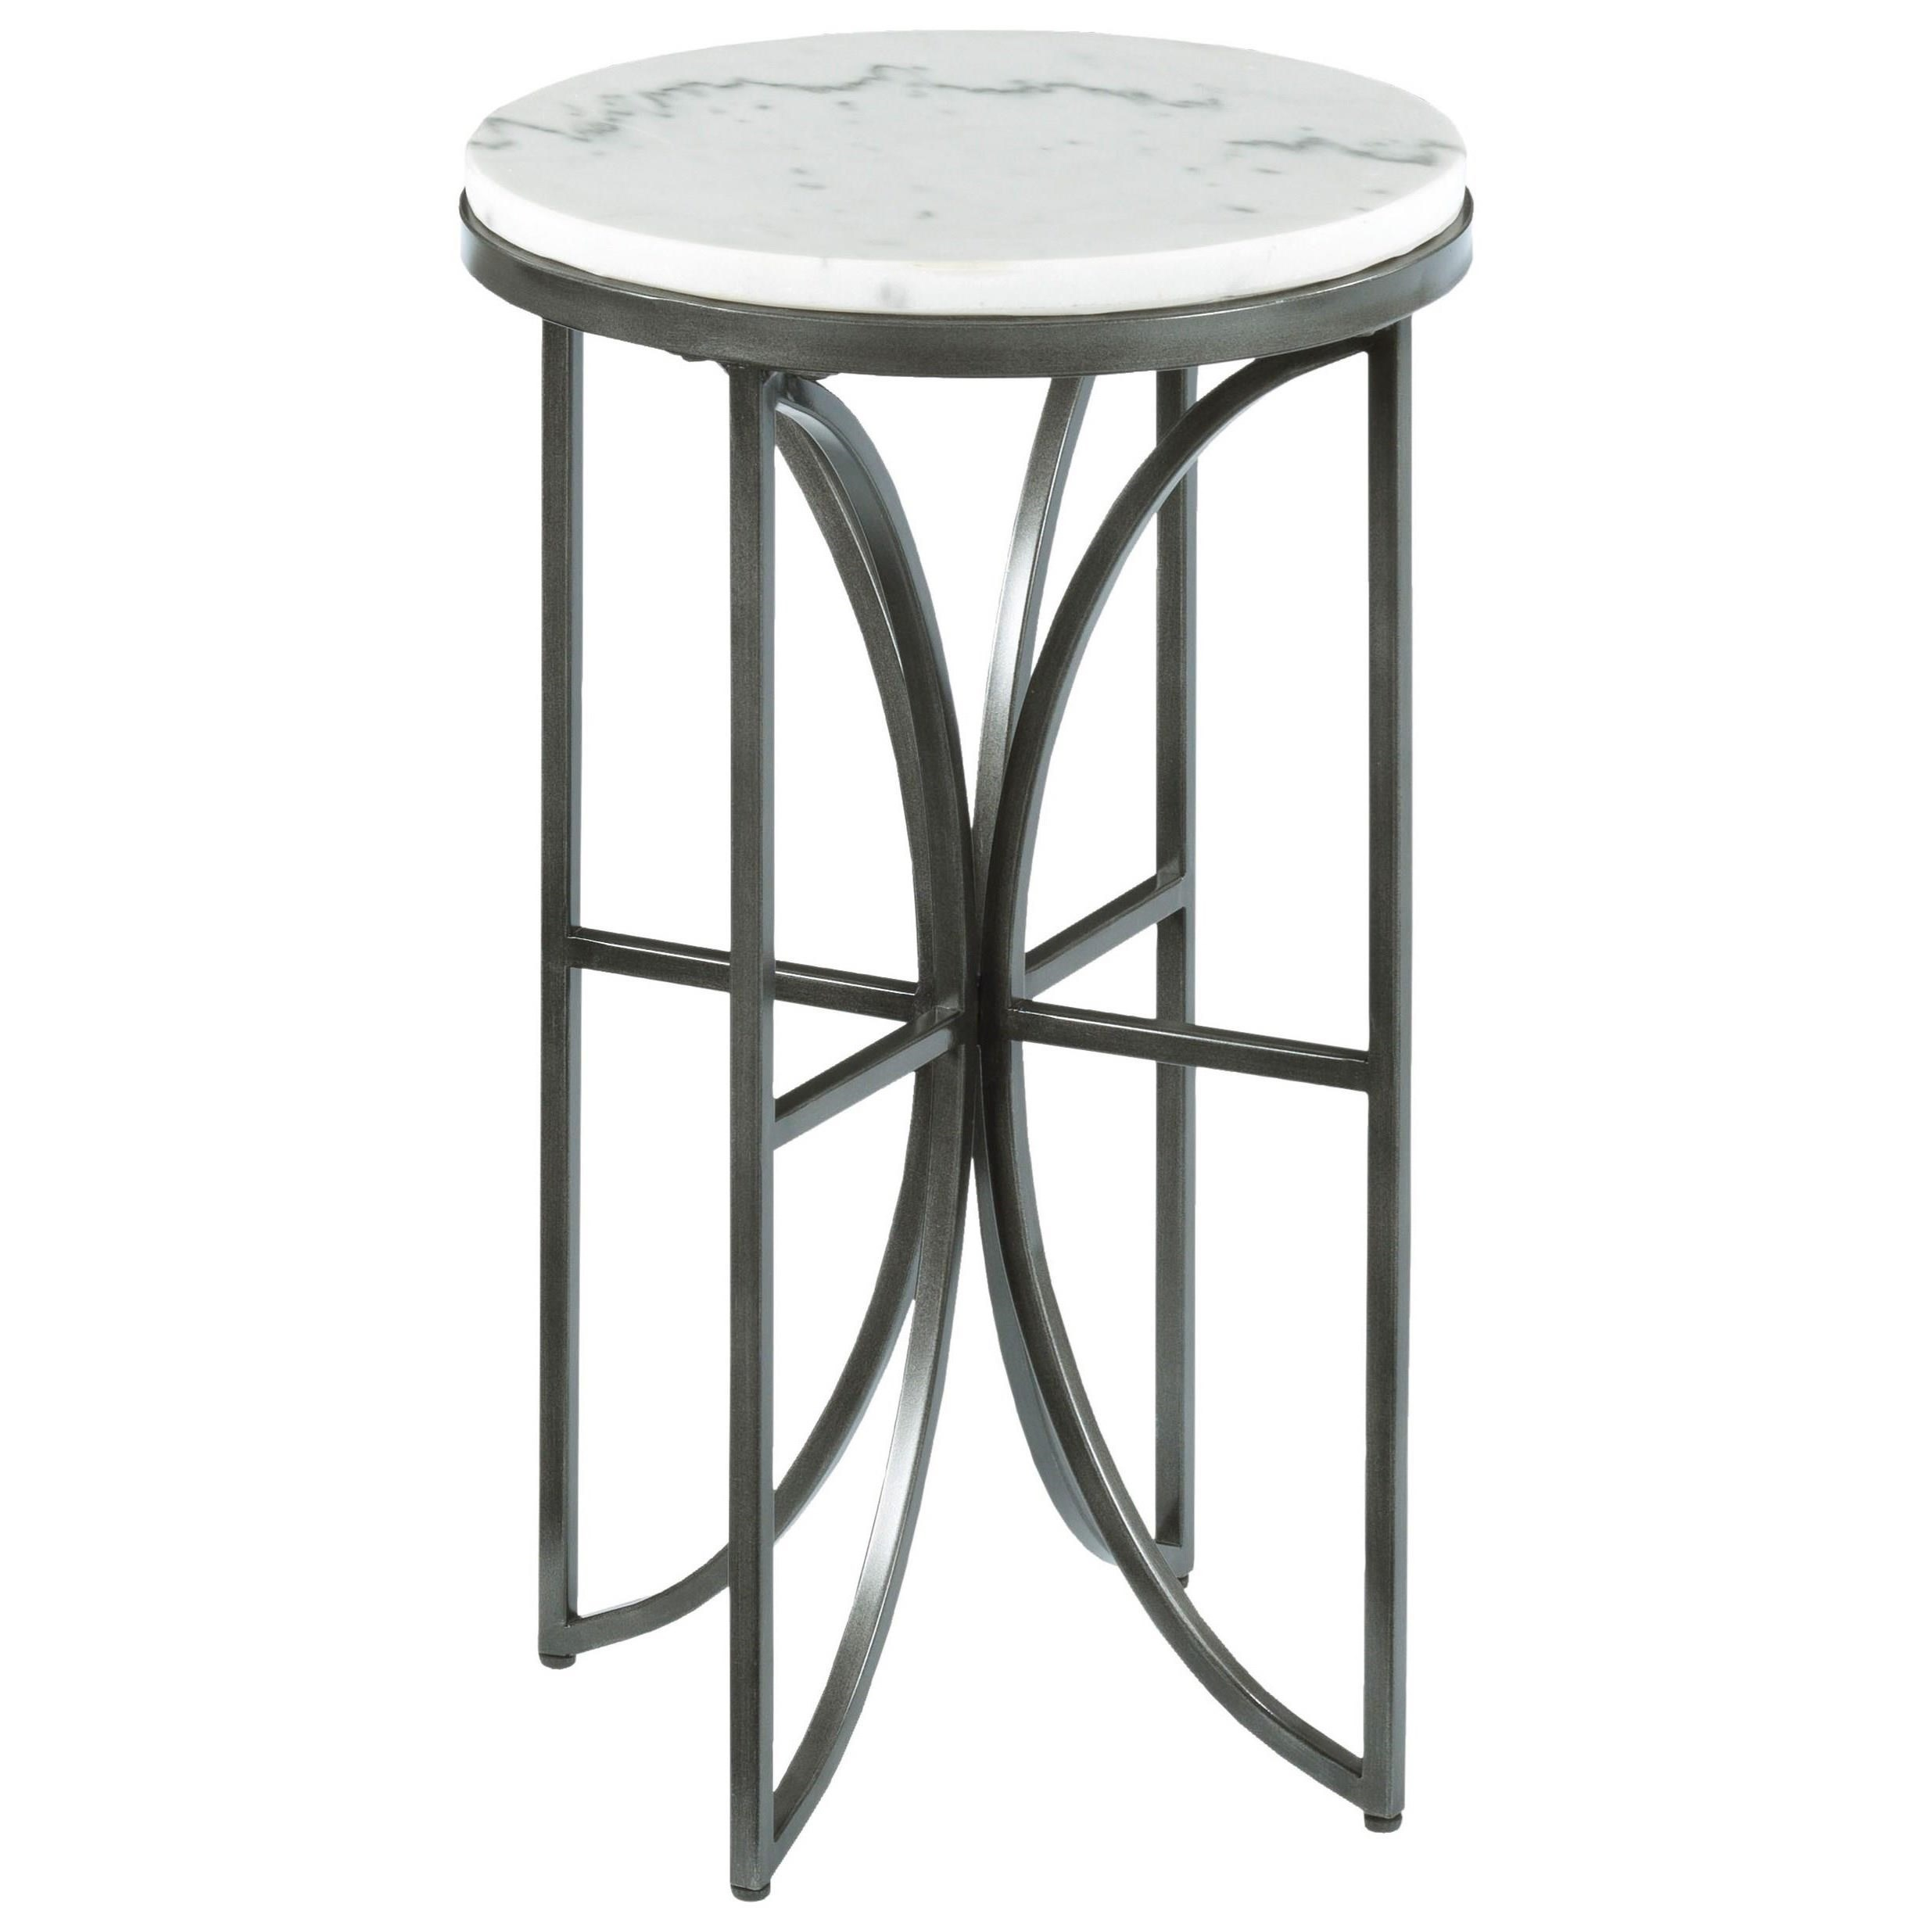 hammary impact small round accent table with marble top wayside products color glass inch tablecloth wooden lamp metal outdoor side red lamps for bedroom modern buffet tall